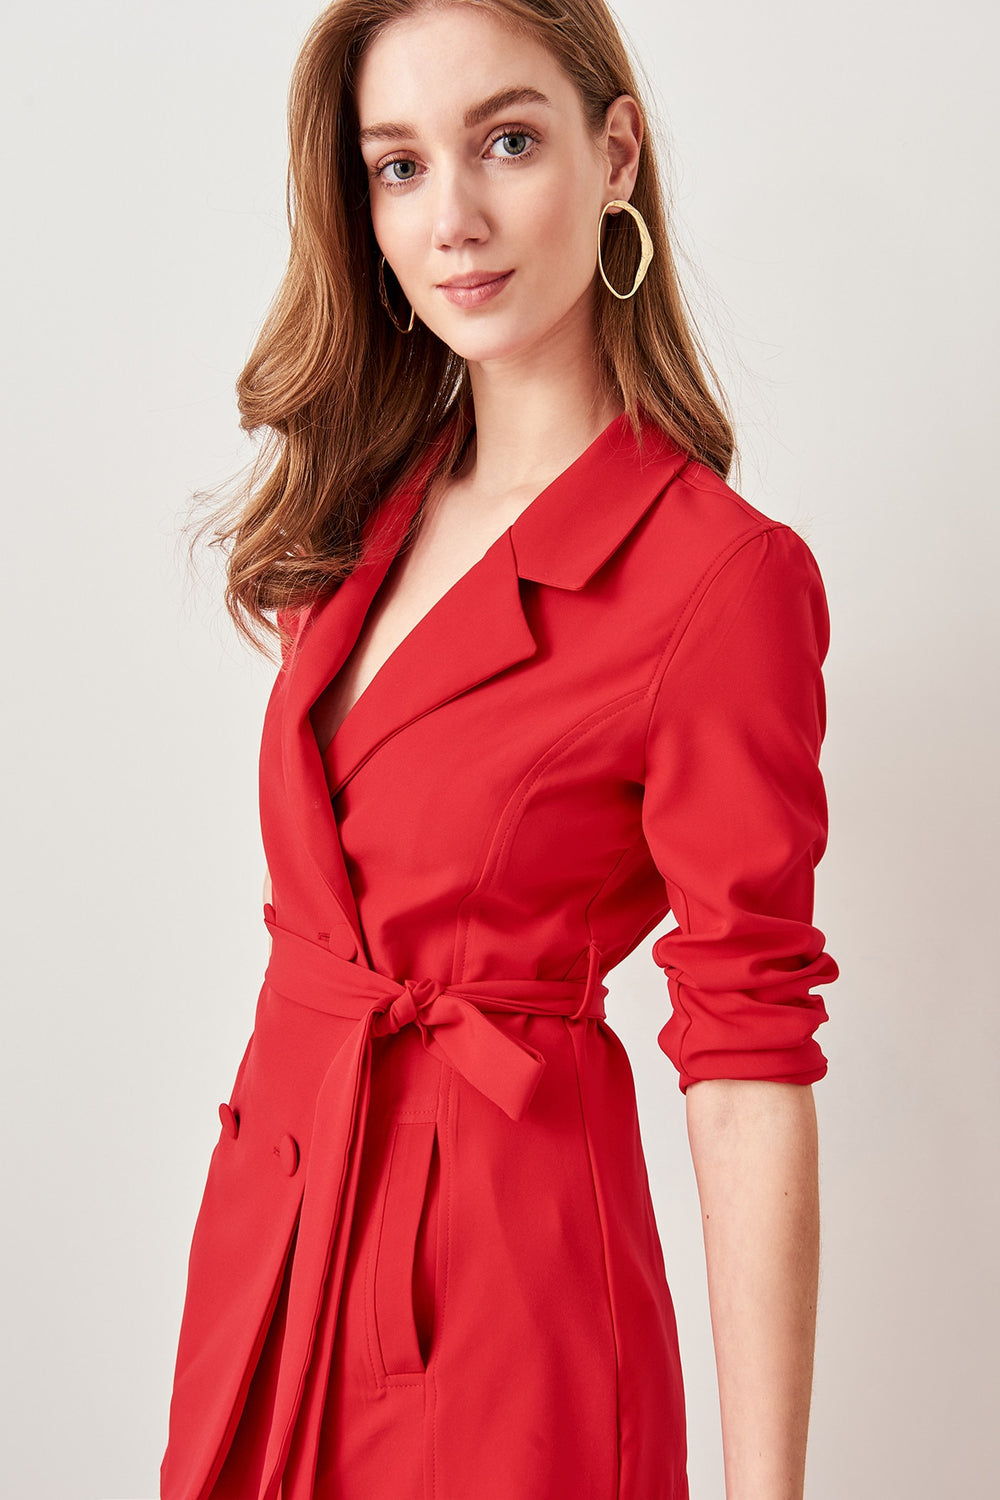 Advanced Linking Red Jacket - Top Maxy